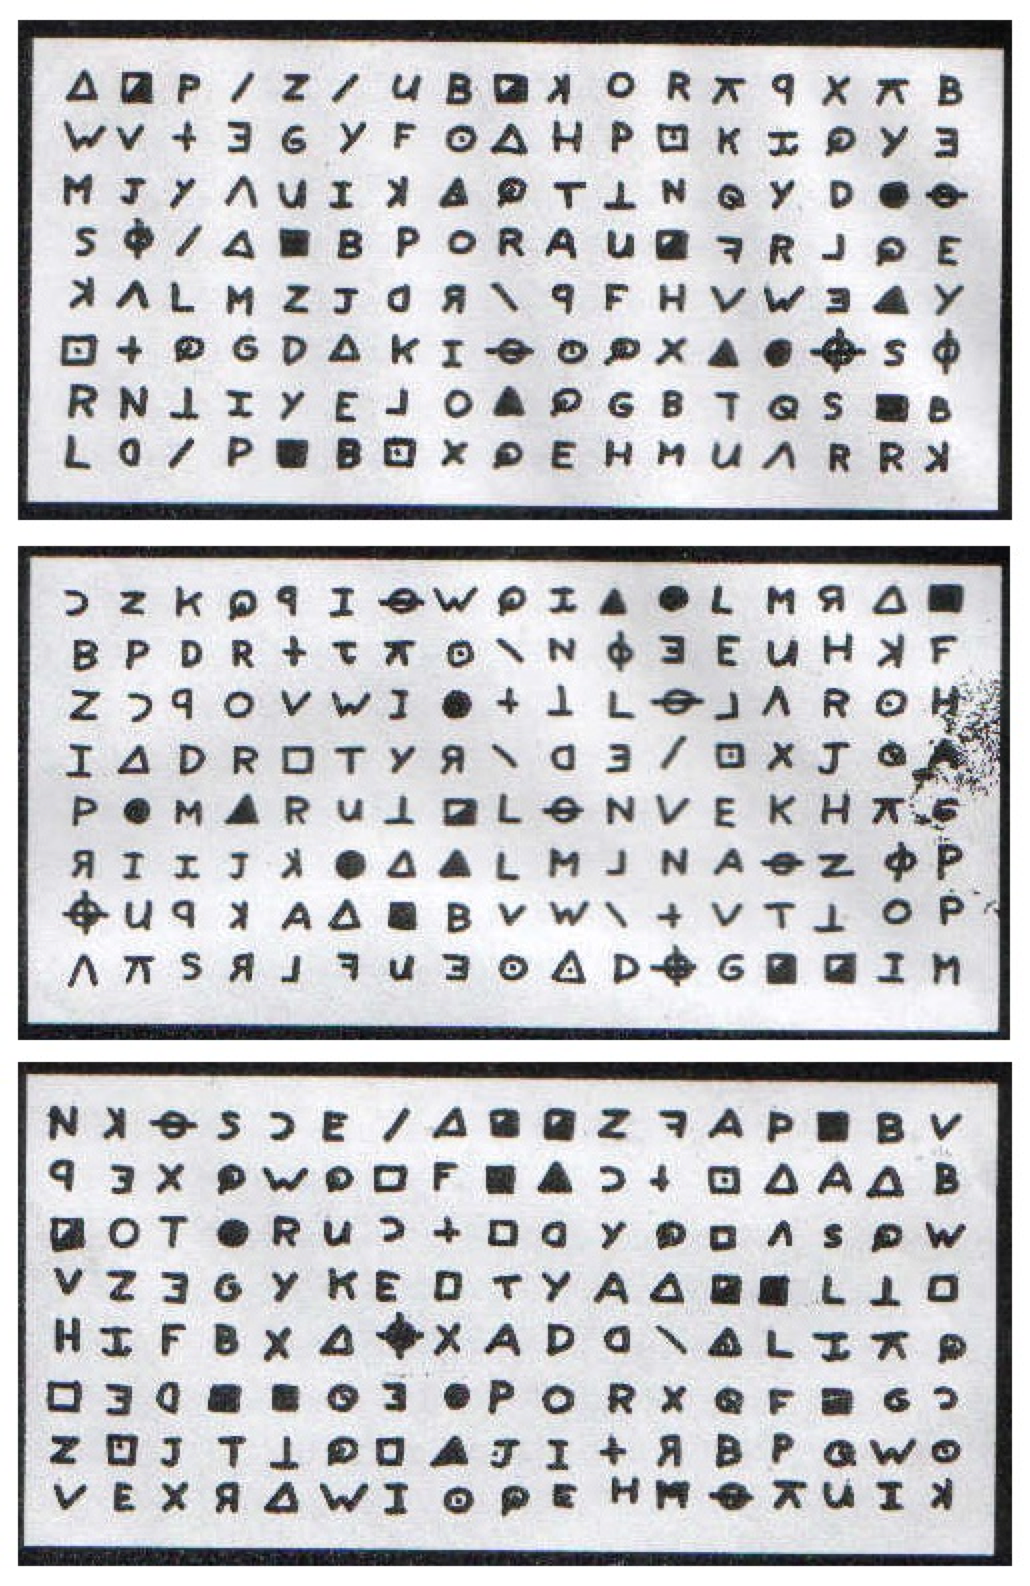 The Zodiac Killer's 408-character cipher